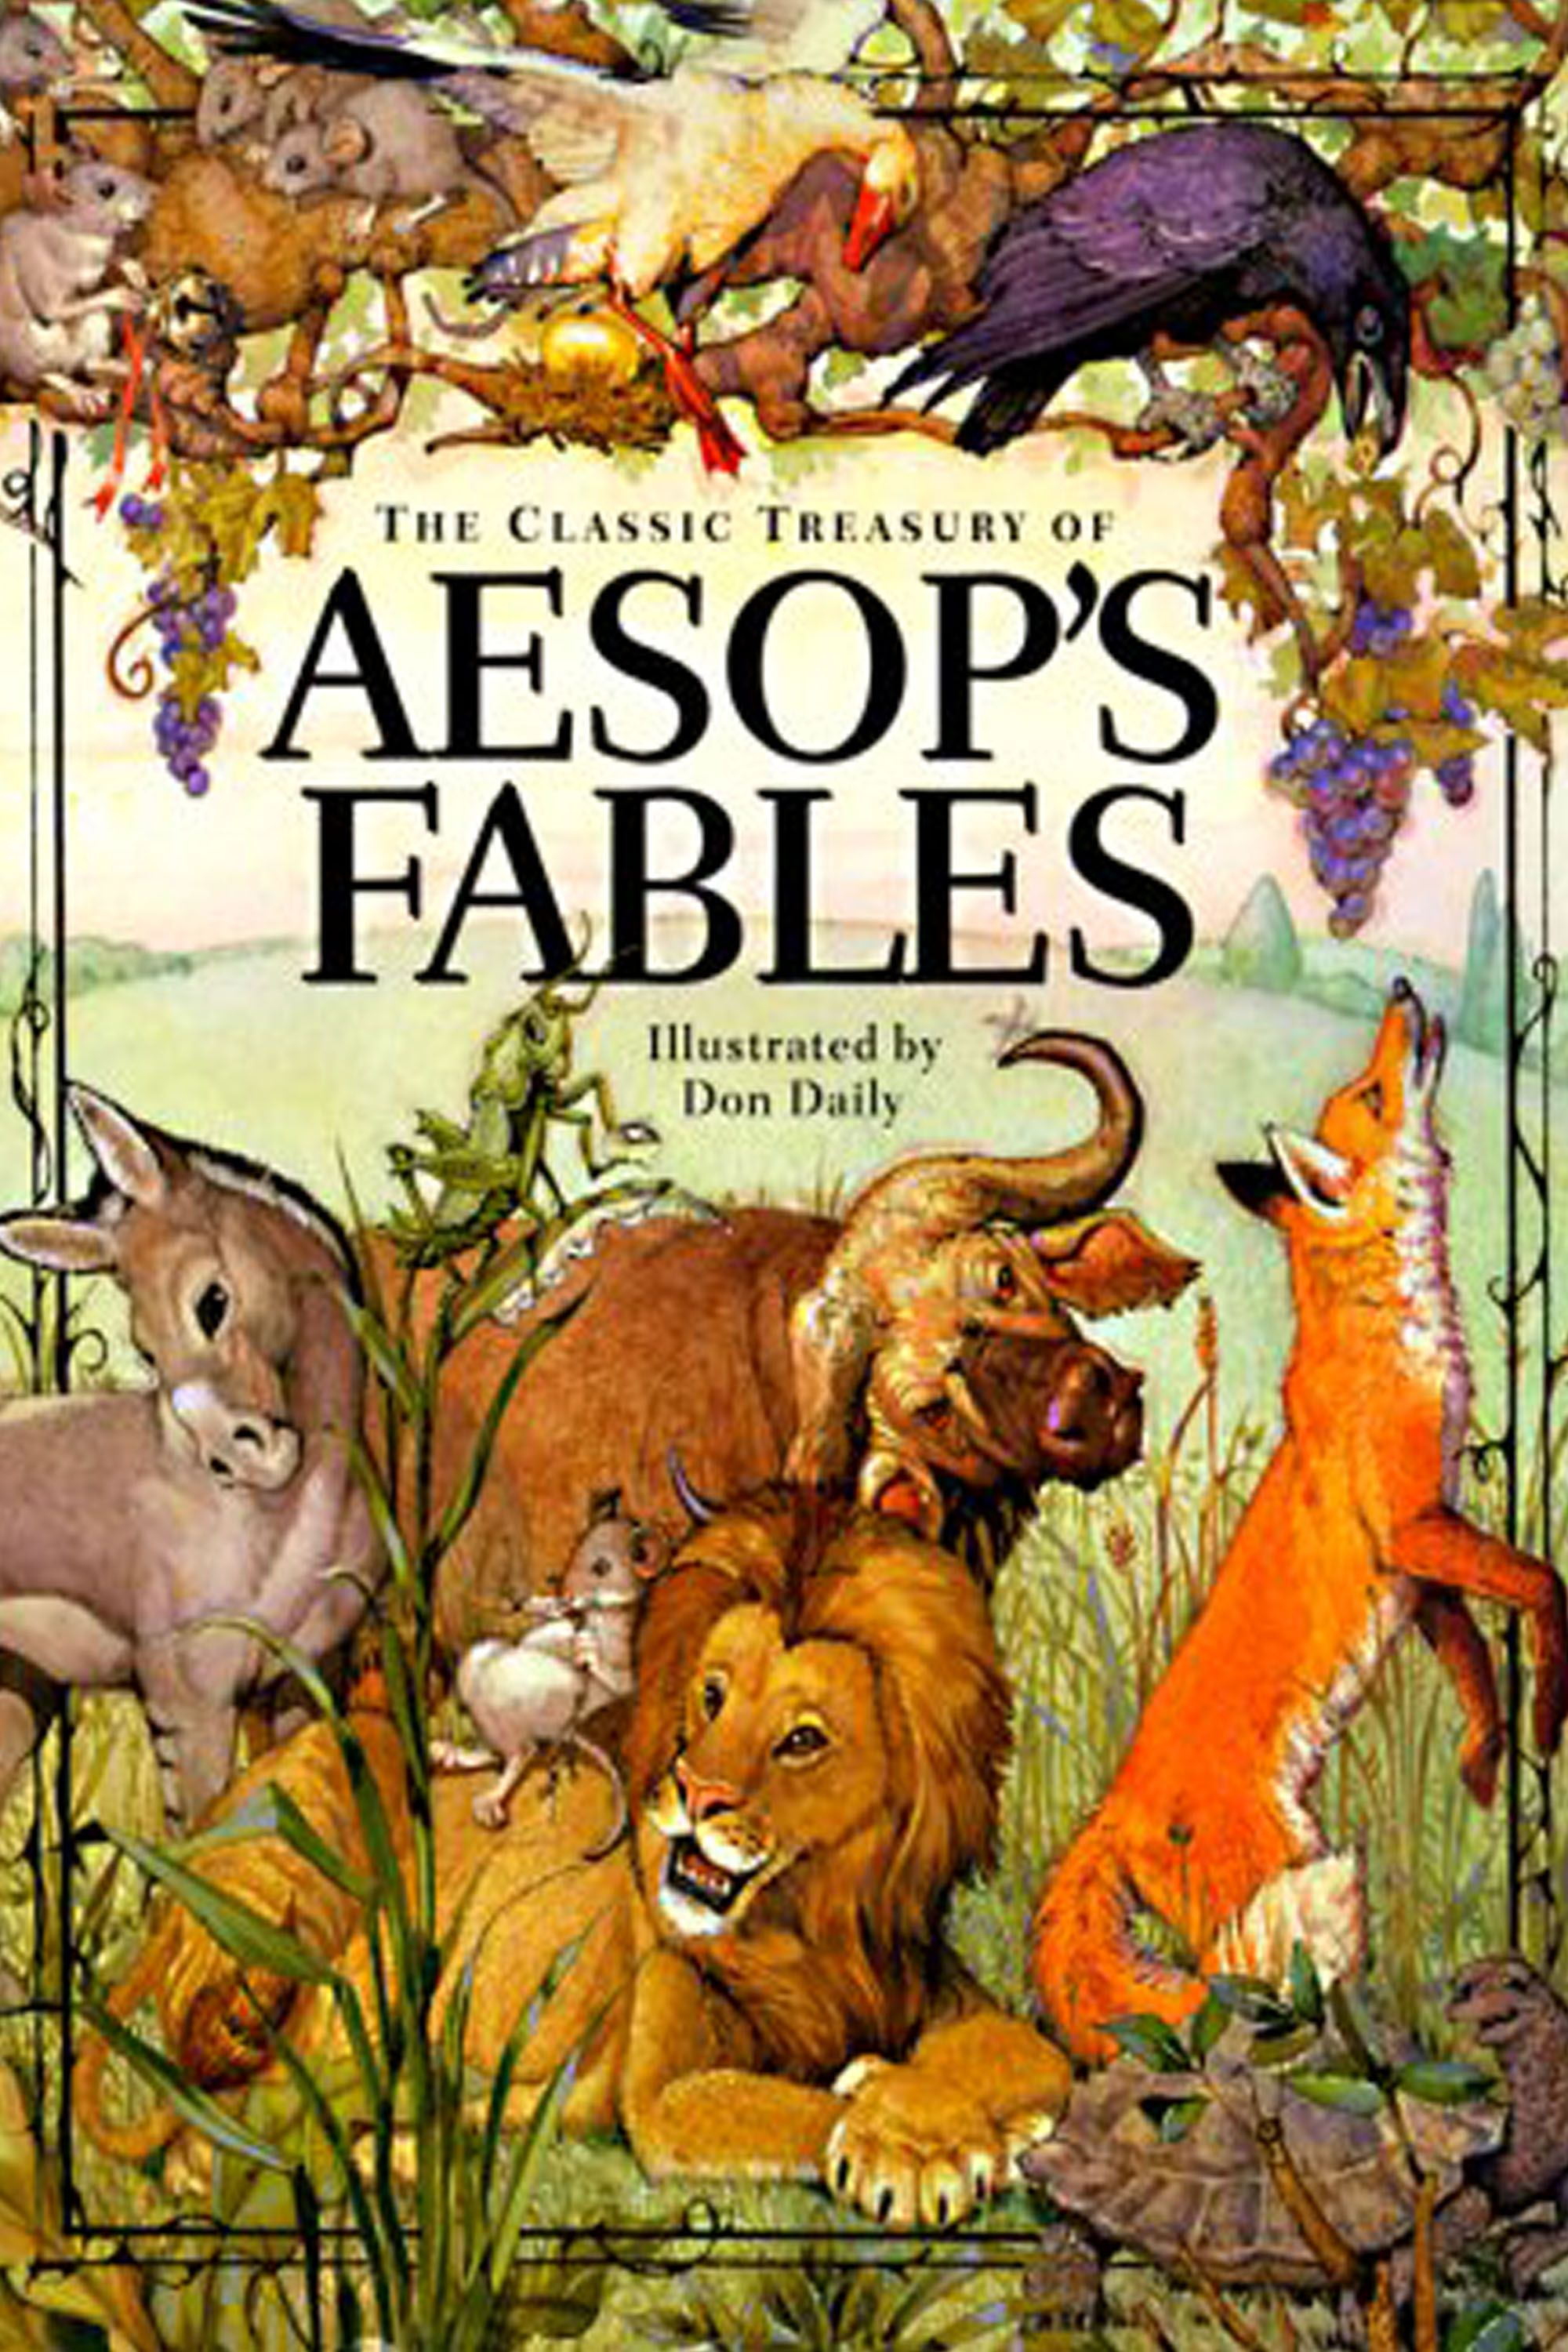 "<p>I grew up with these Greek fables. There is still great wisdom in this slim collection populated by lions, foxes, wolves, fishermen, and the like, offering apt and digestible lessons such as ""The loudest quarrels are often the most petty"" and ""Men often mistake notoriety for fame."" My favorite, ""The Dog and the Shadow,"" advises thus: ""Grasp at the shadow and you will lose the substance."" Might it be wise to consume one of these bite-sized tales at the start of each day? </p>"